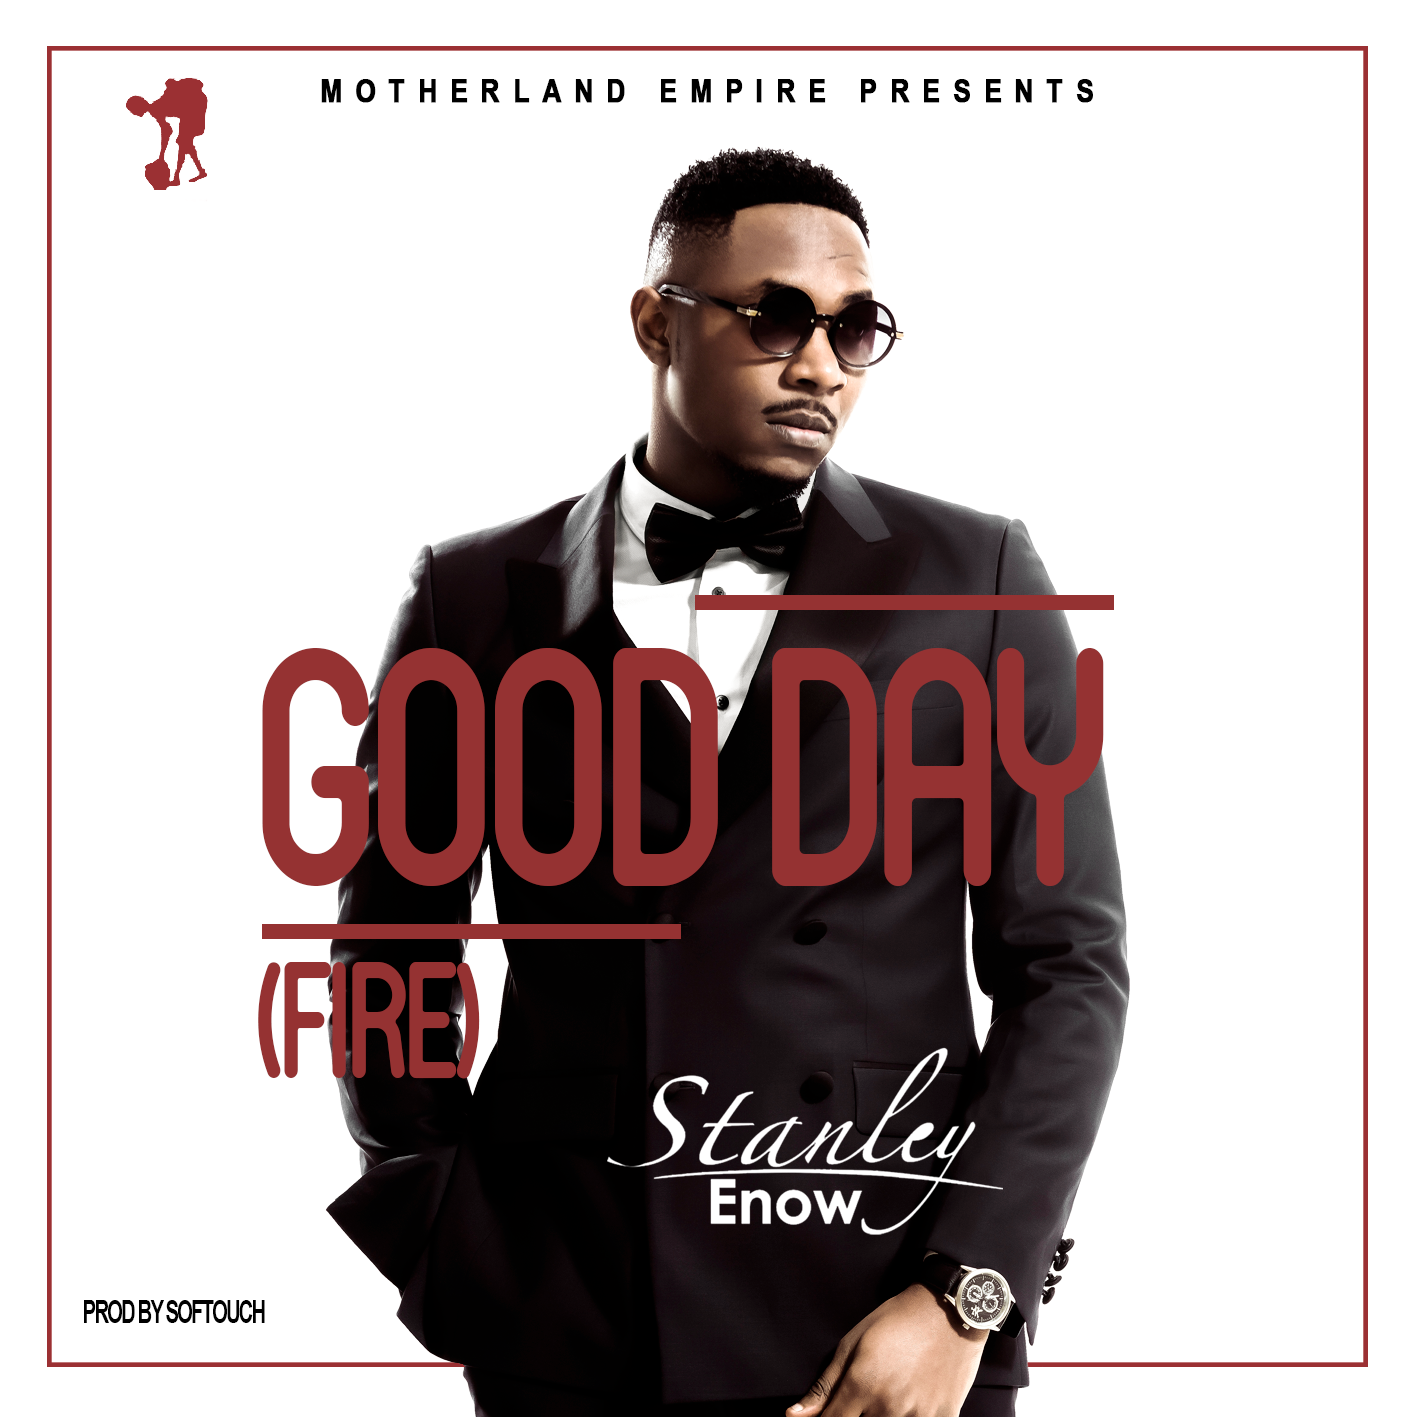 Music: Stanley Enow – Good Day (Fire)